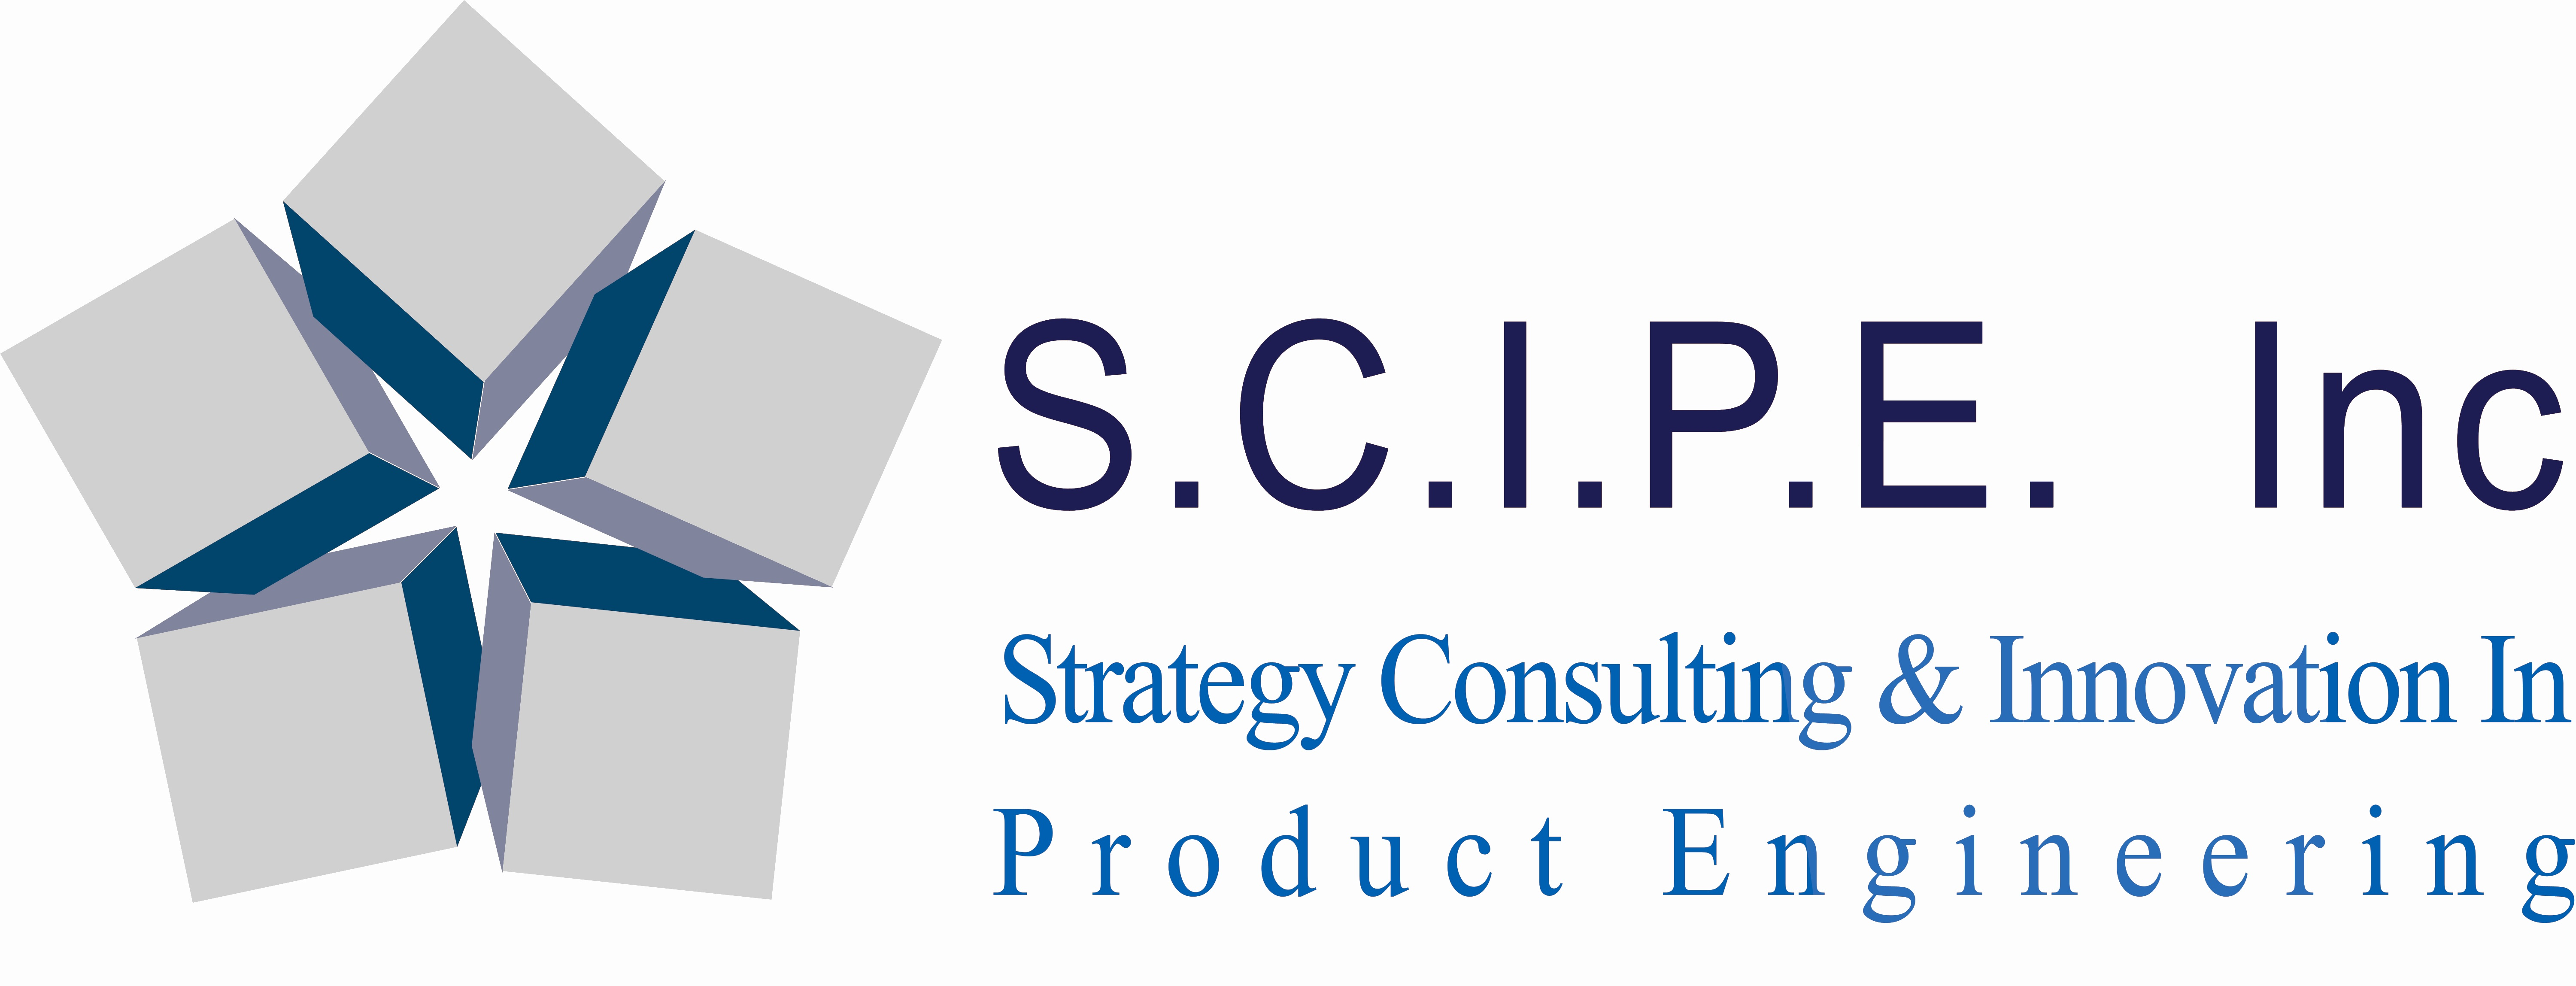 S c i p e strategy consulting innovation in product for Product innovation consultants